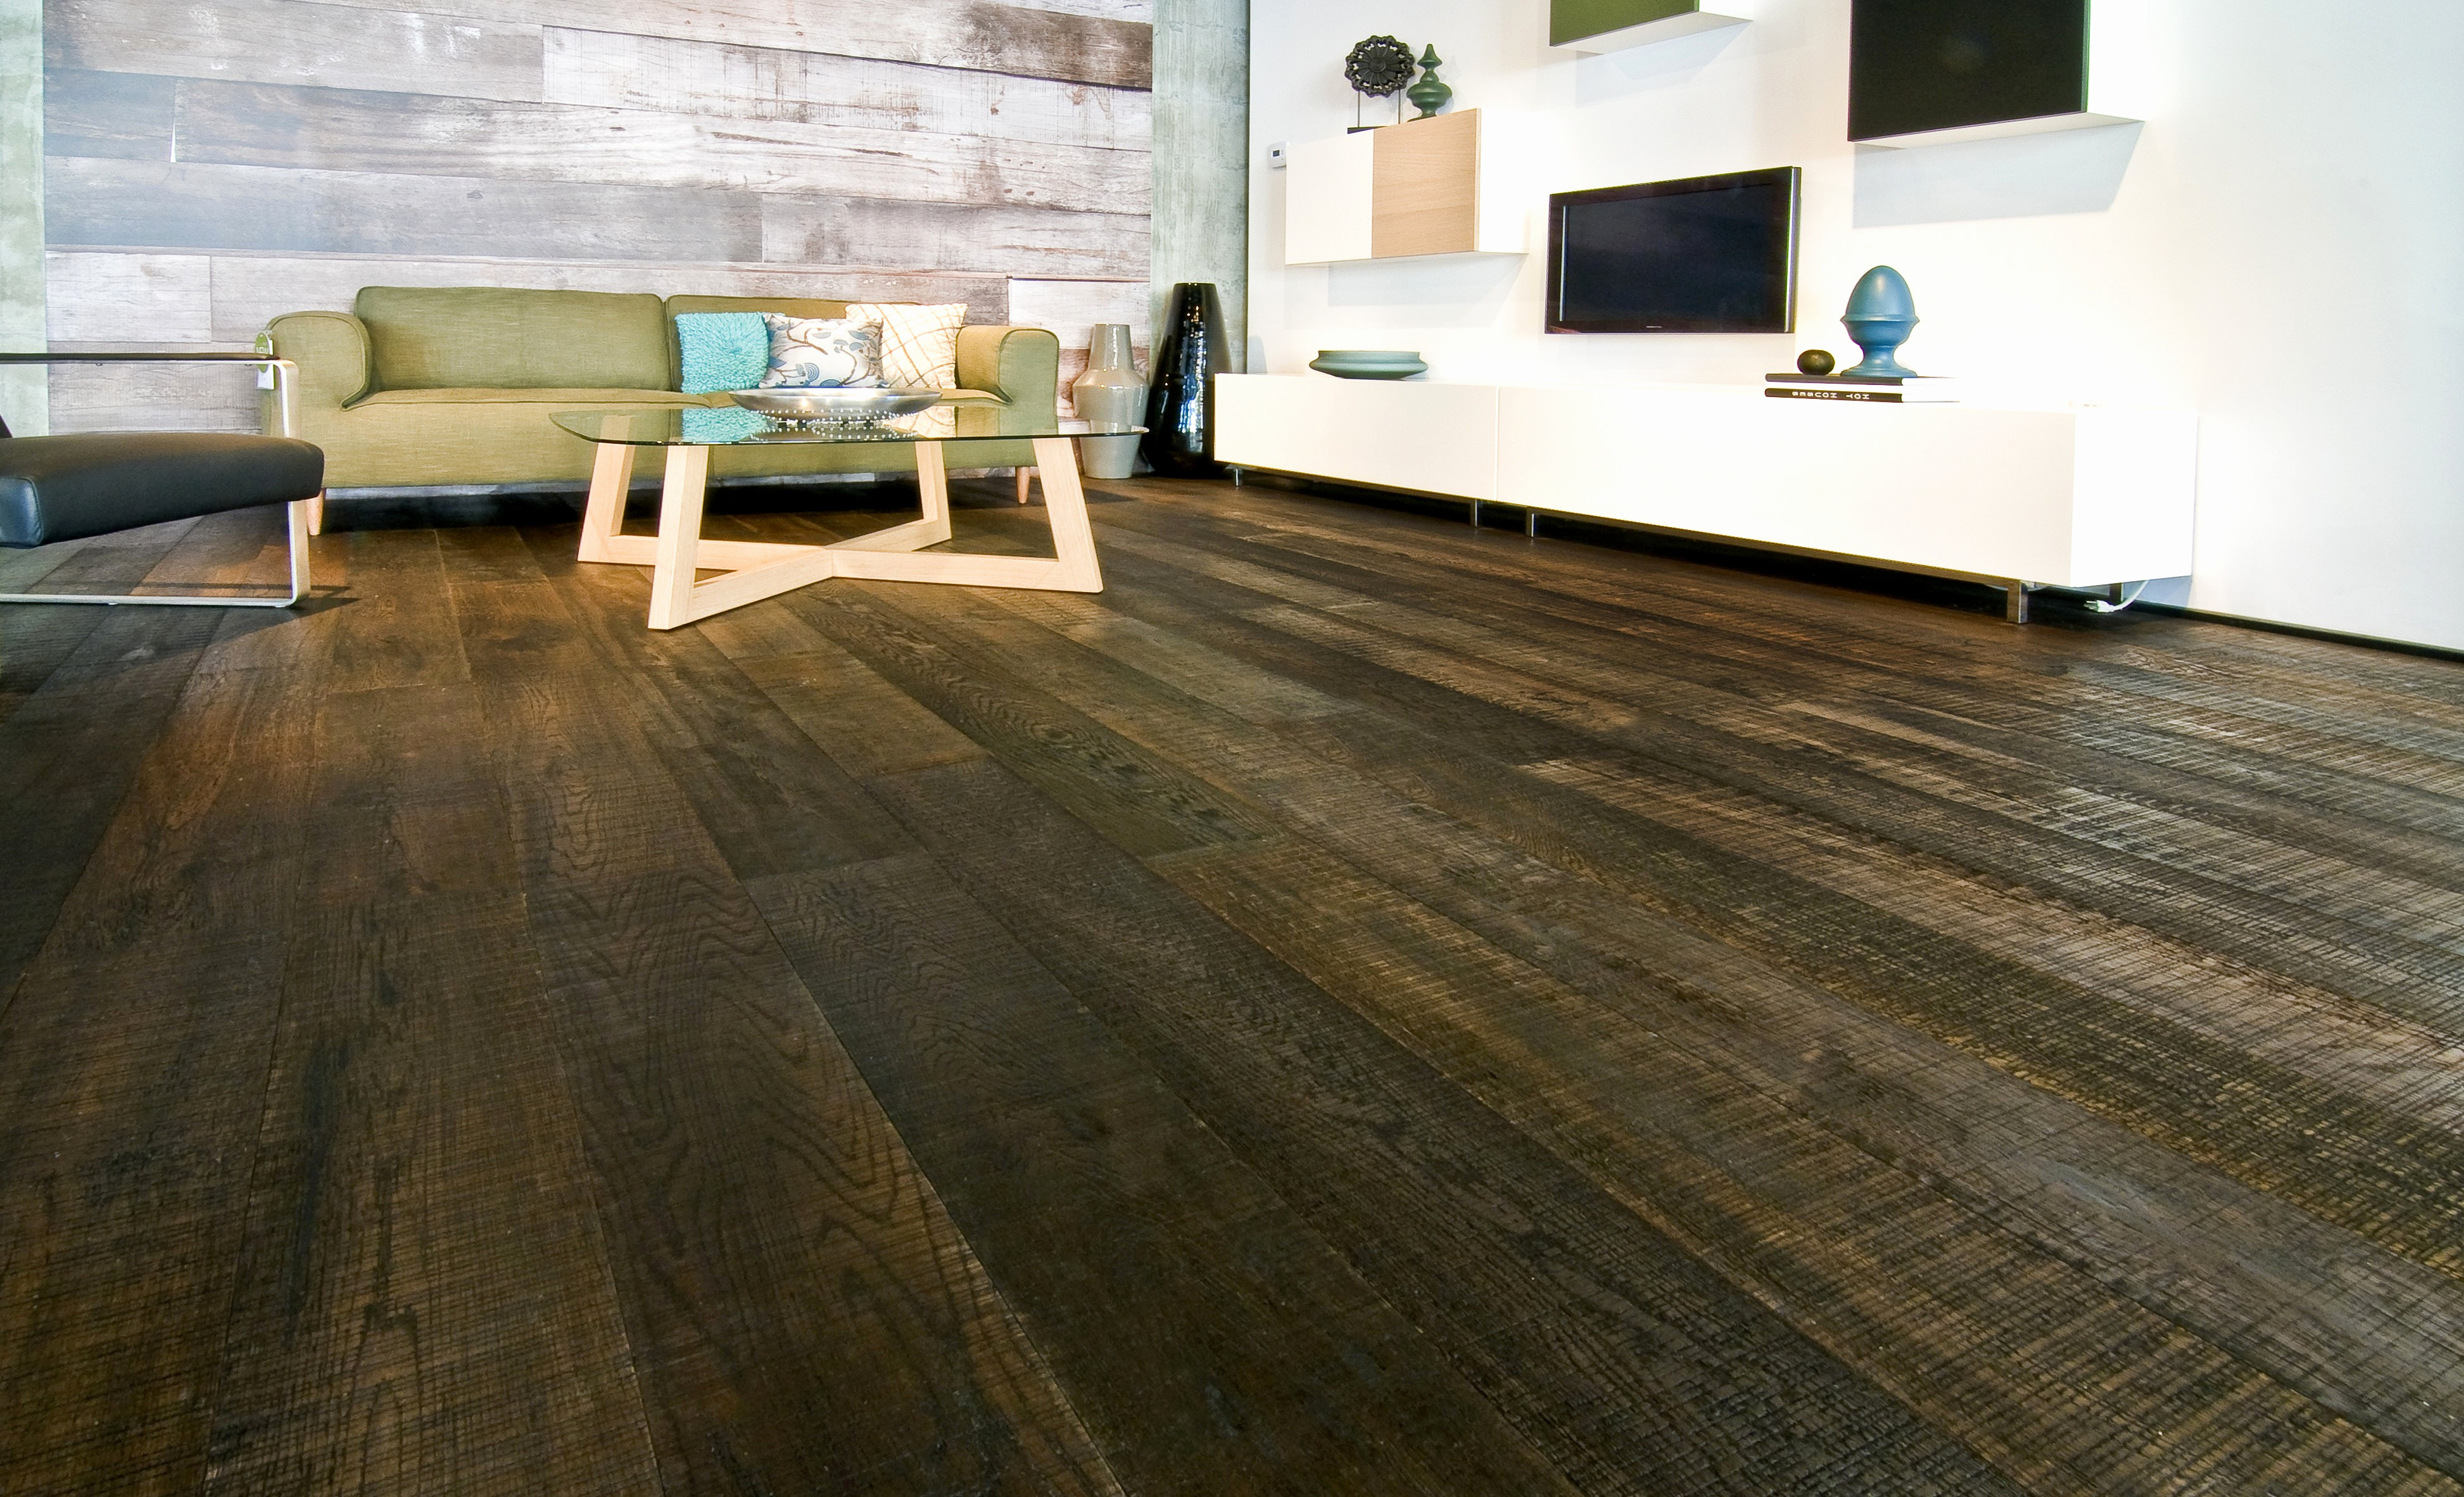 hardwood floor repair of hardwood floor refinishing tampa awesome new gray stained maple with regard to hardwood floor refinishing tampa luxury engaging discount hardwood flooring 5 where to buy inspirational 0d hardwood floor refinishing